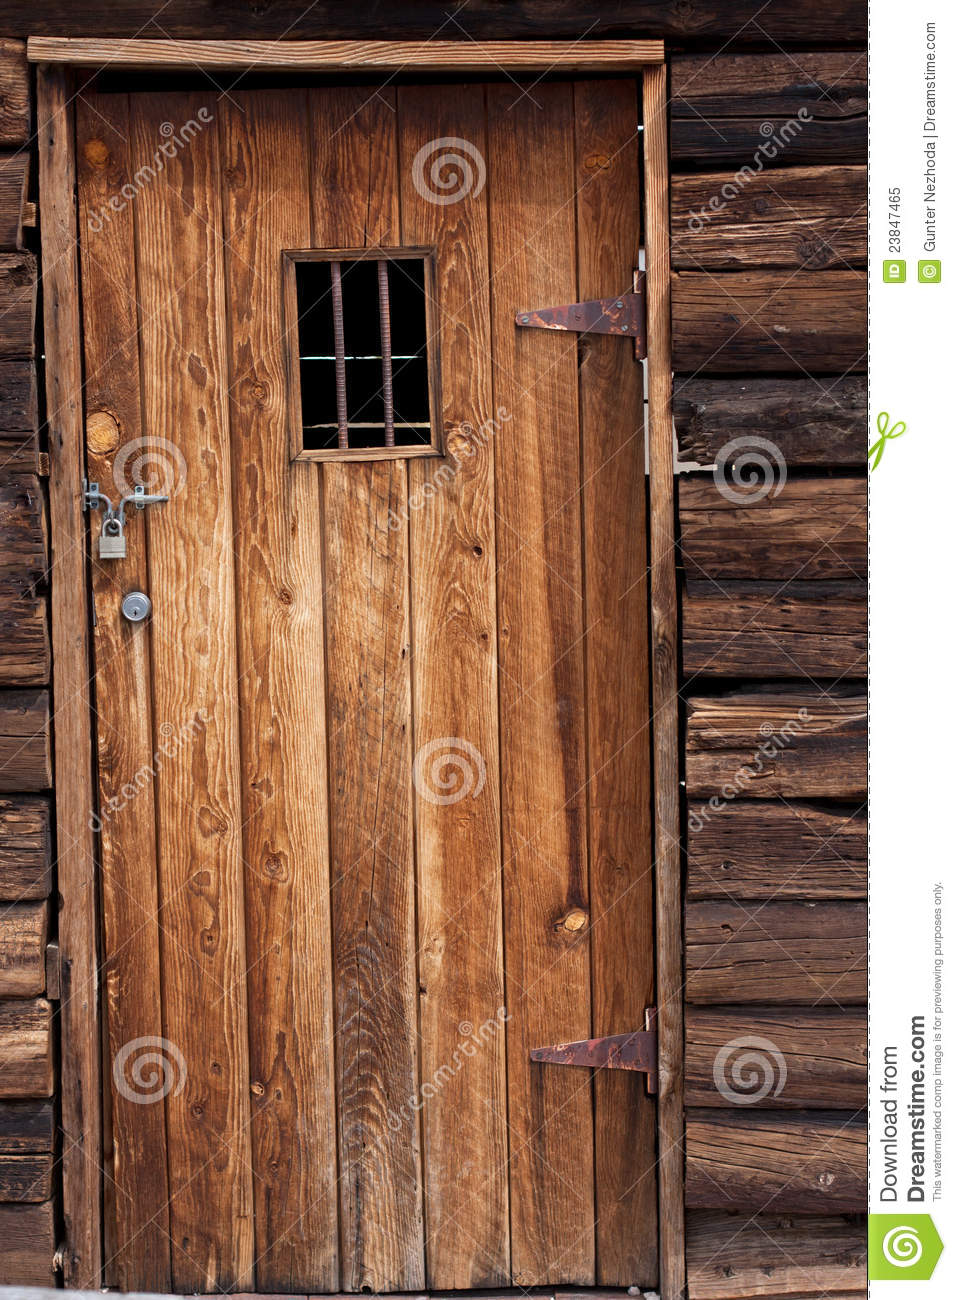 Old western jail door stock image Image of architecture  23847465